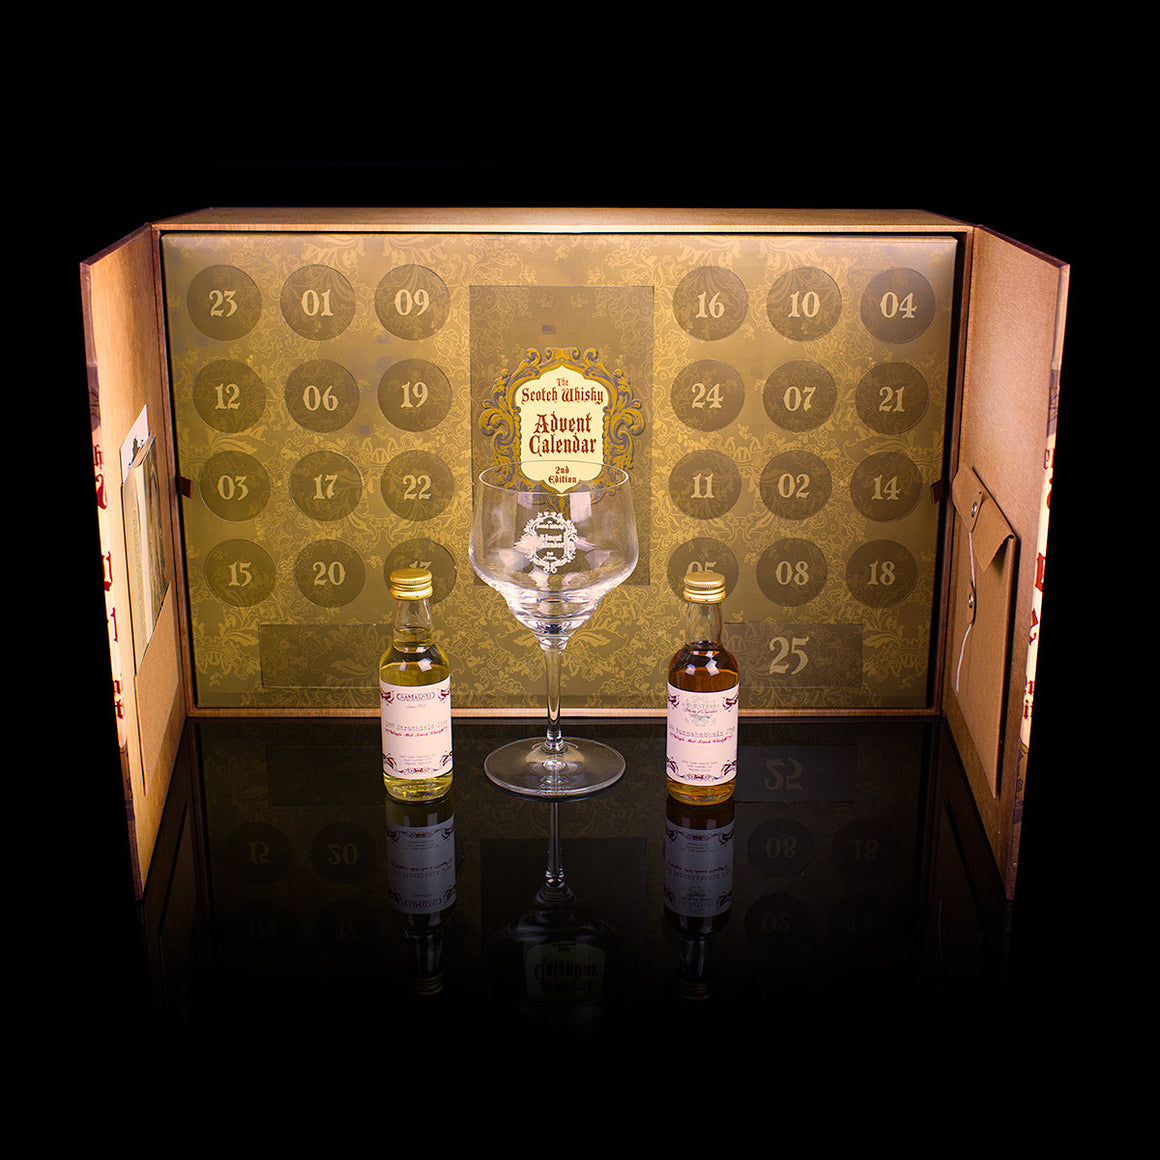 The Scotch Whisky Advent Calendar is a fantastic whisky gift.